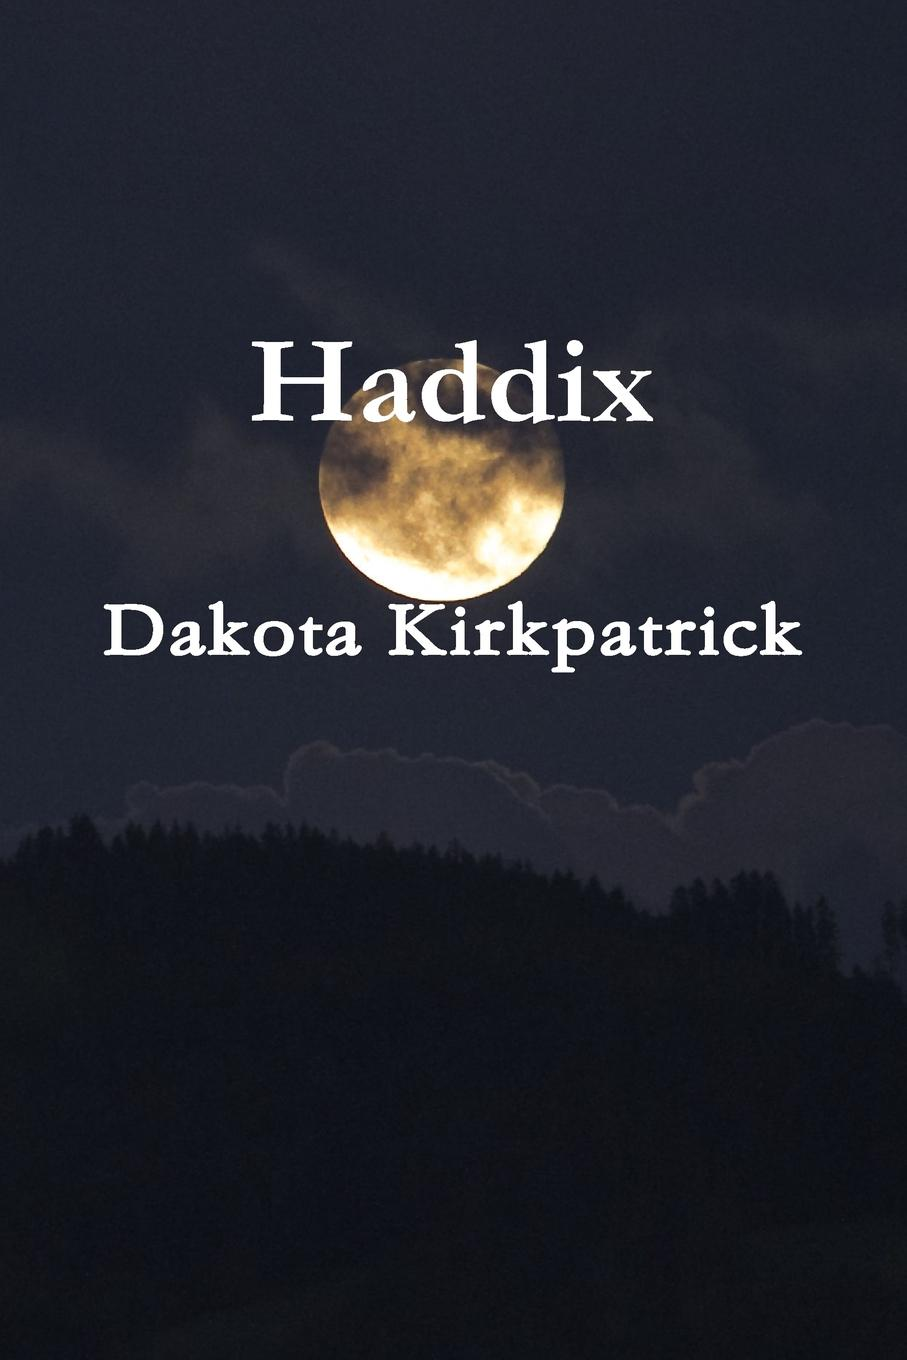 Dakota Kirkpatrick Haddix derek bailey and the story of free improvisation